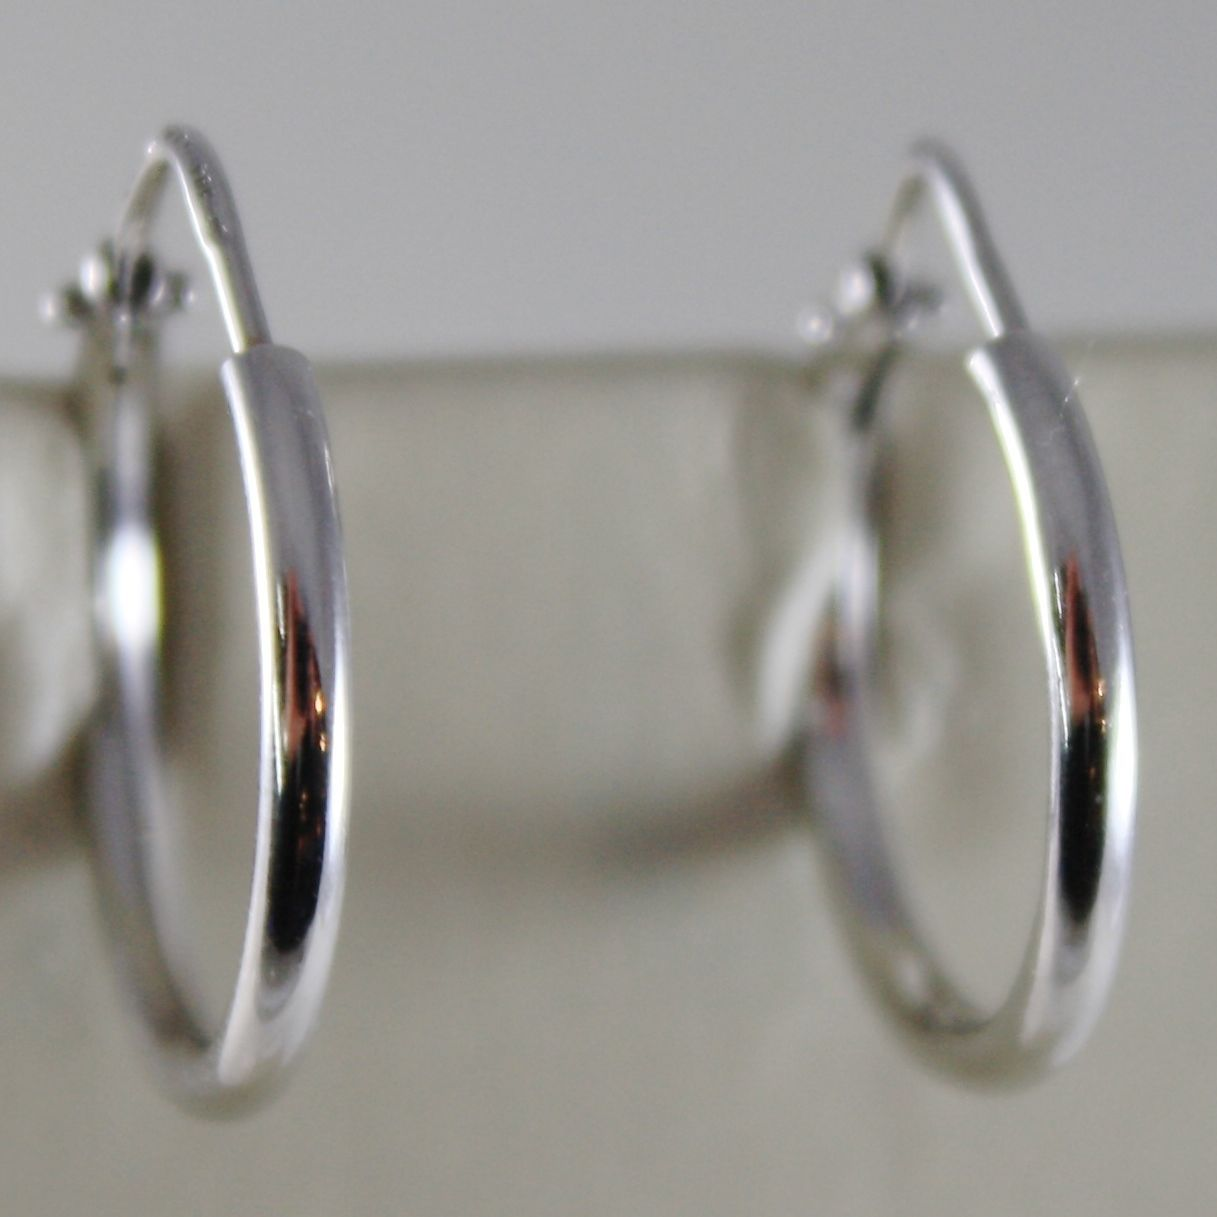 18K WHITE GOLD EARRINGS LITTLE CIRCLE HOOP 17 MM 0.67 IN DIAMETER MADE IN ITALY